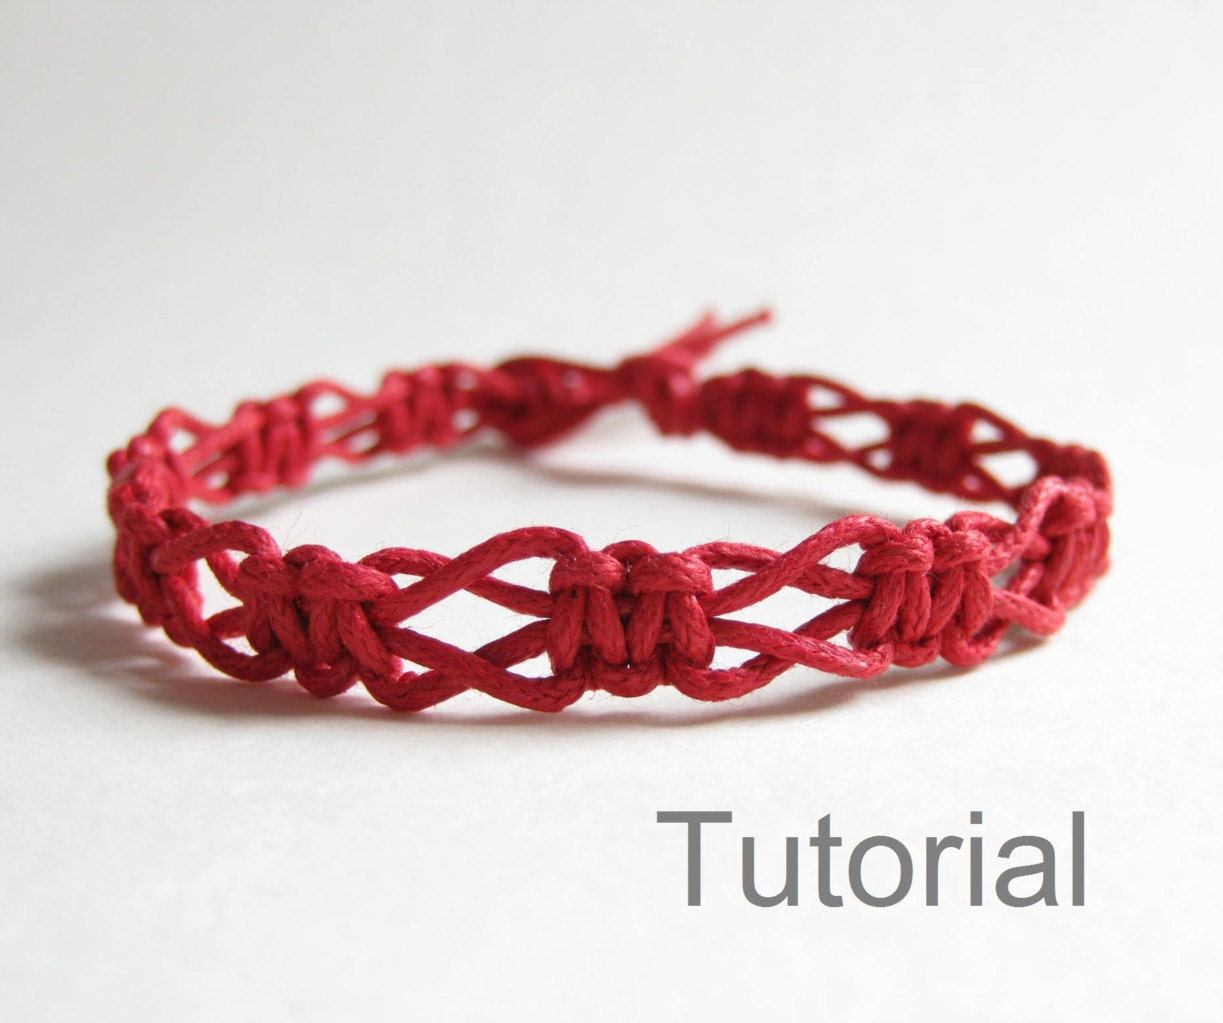 beginners macrame knotted bracelet pdf tutorial pattern. Black Bedroom Furniture Sets. Home Design Ideas